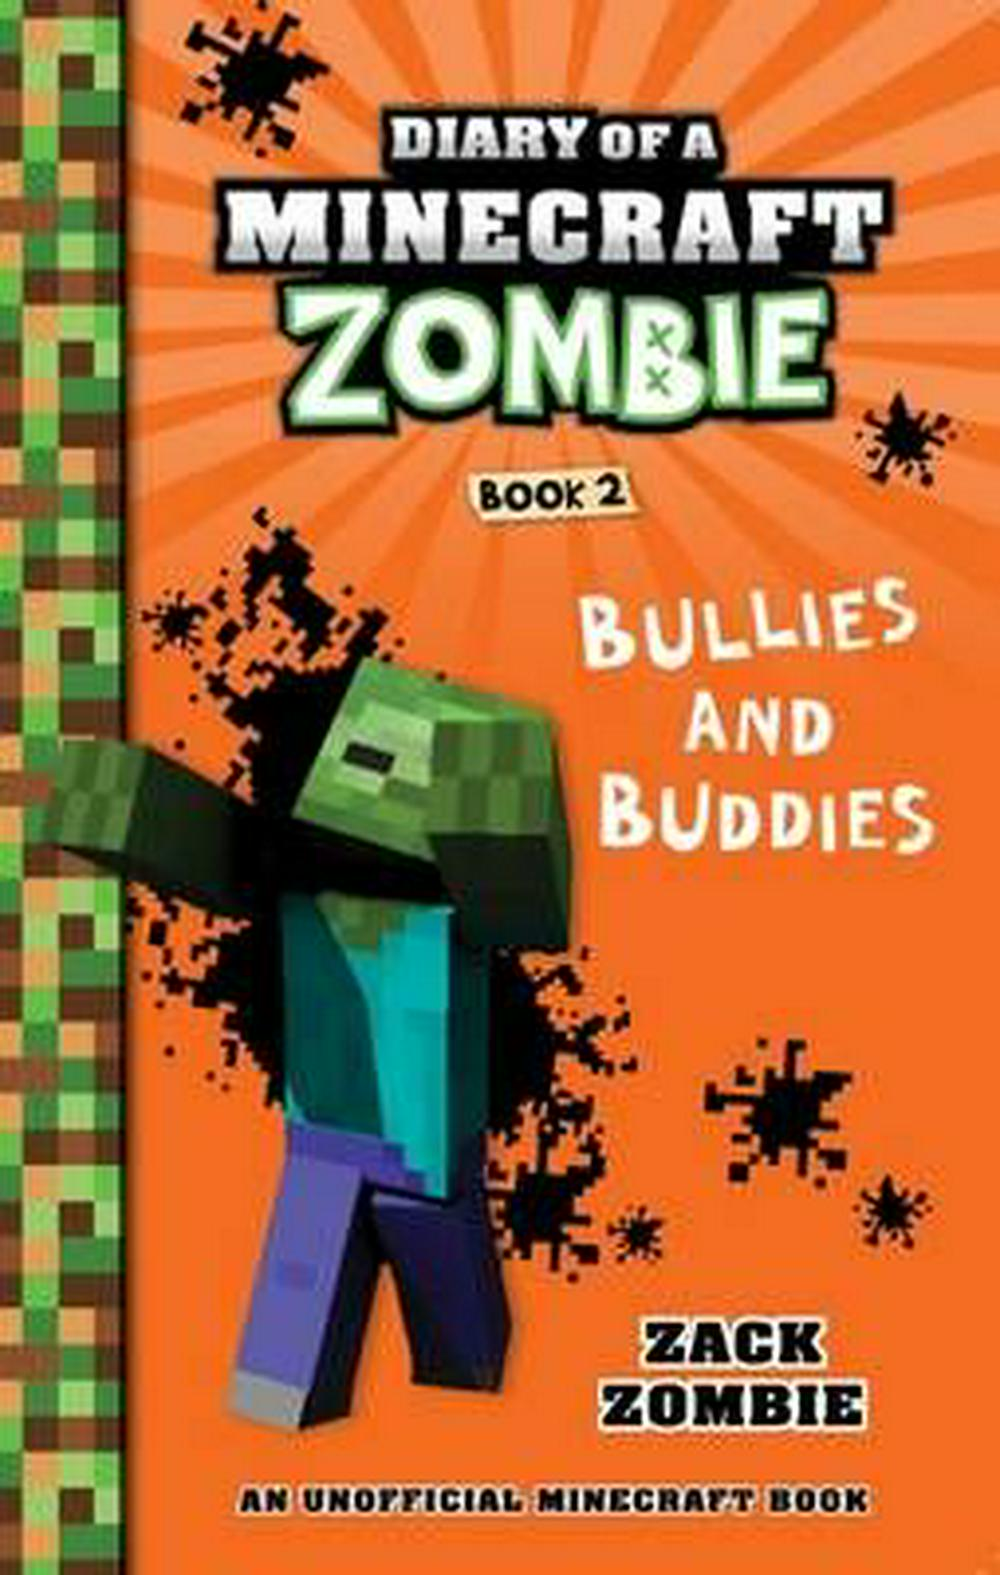 Diary of a Minecraft Zombie Book#2 Bullies and Buddies